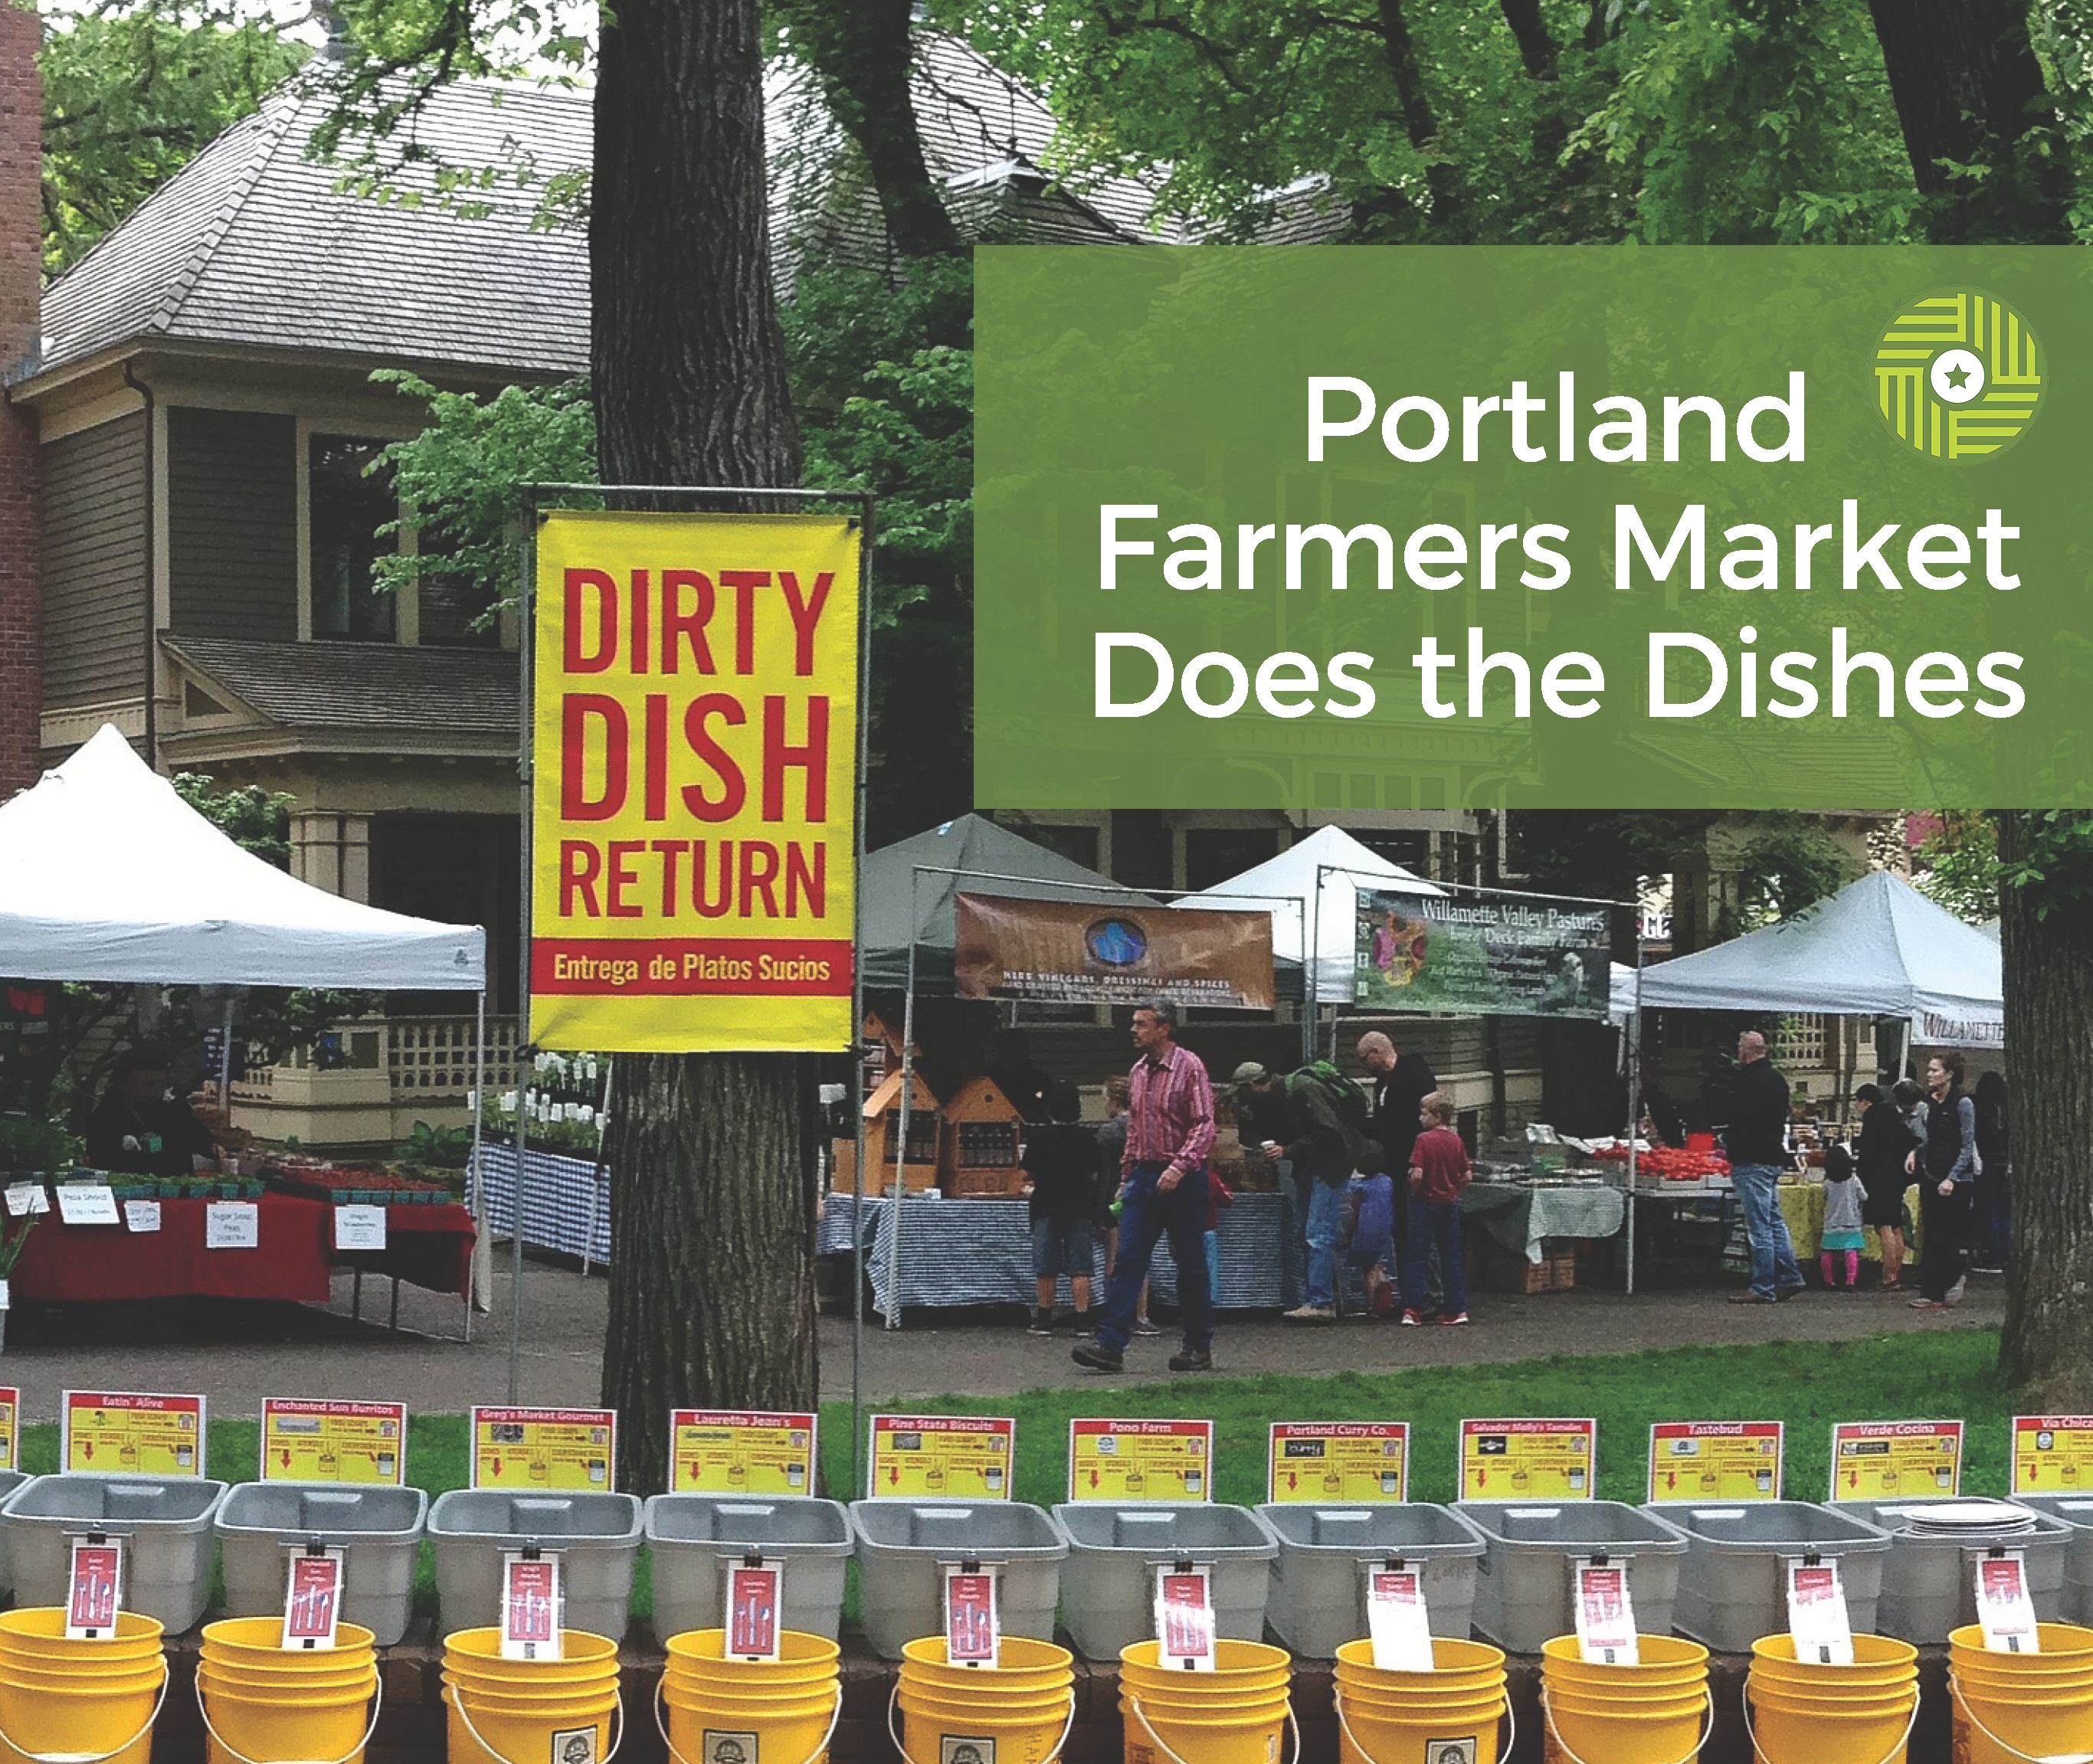 Portland Farmers Market Does the Dishes